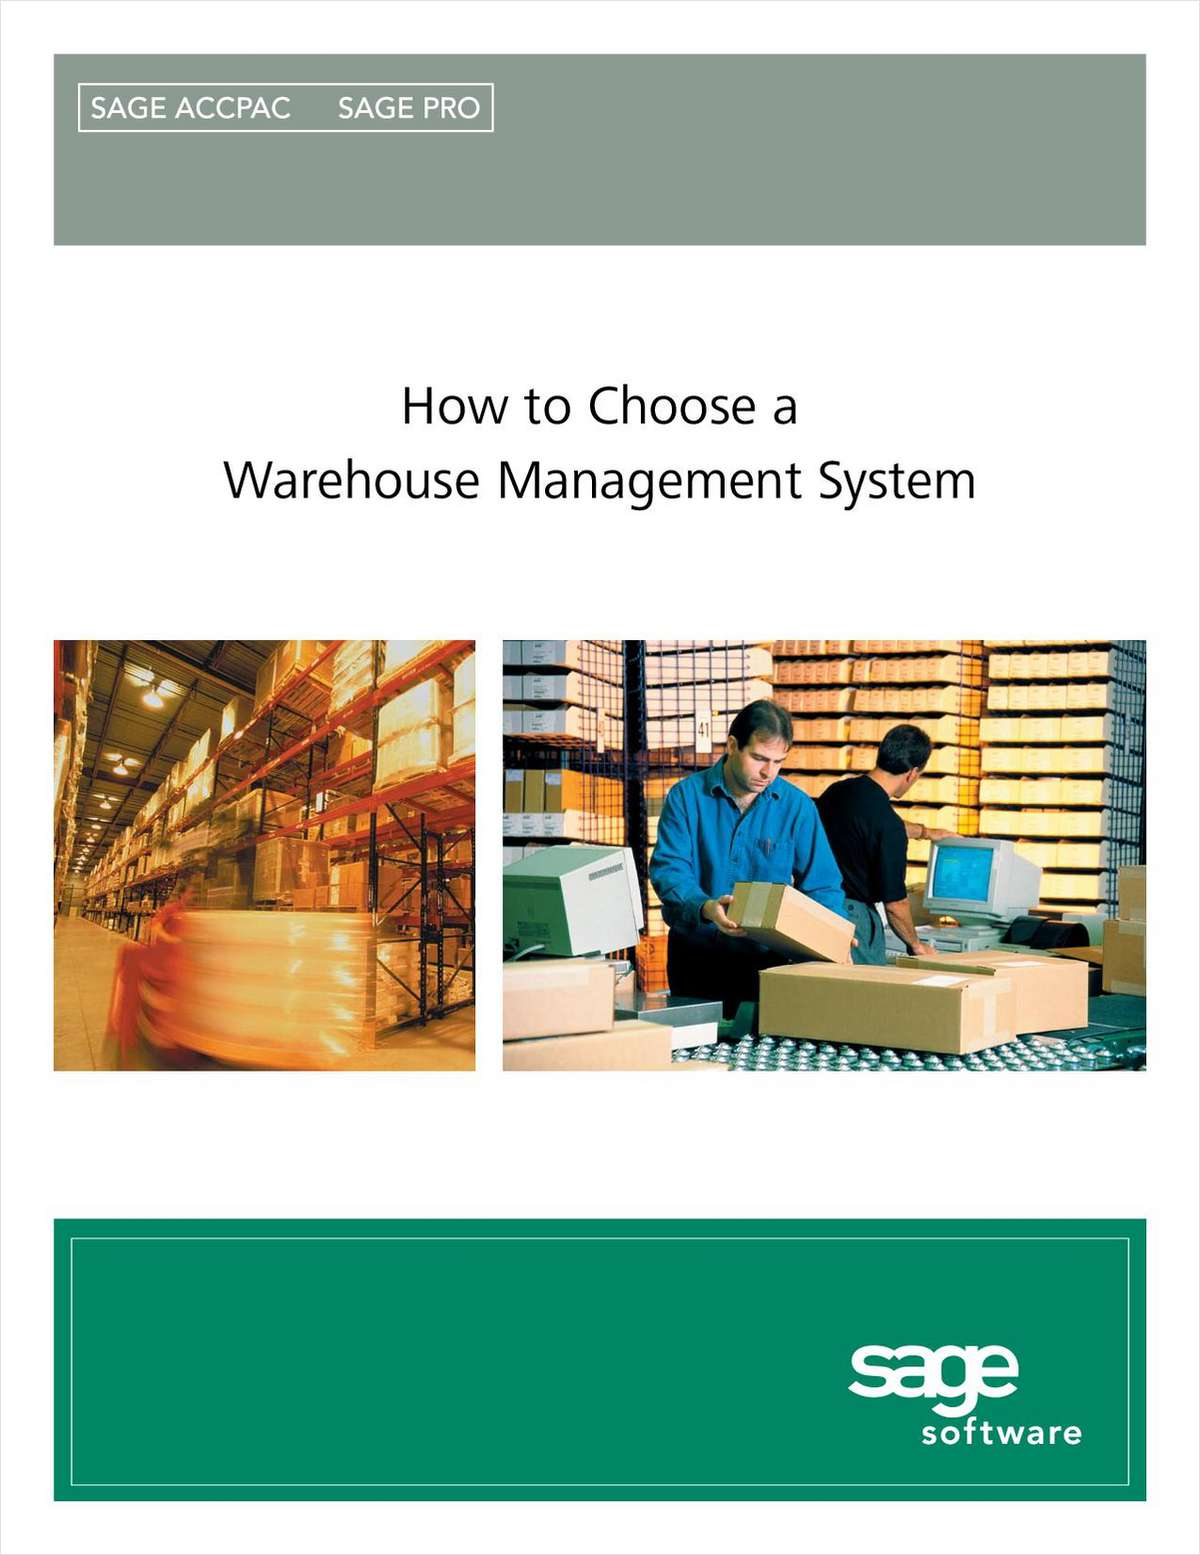 How to Select a Warehouse Management Solution